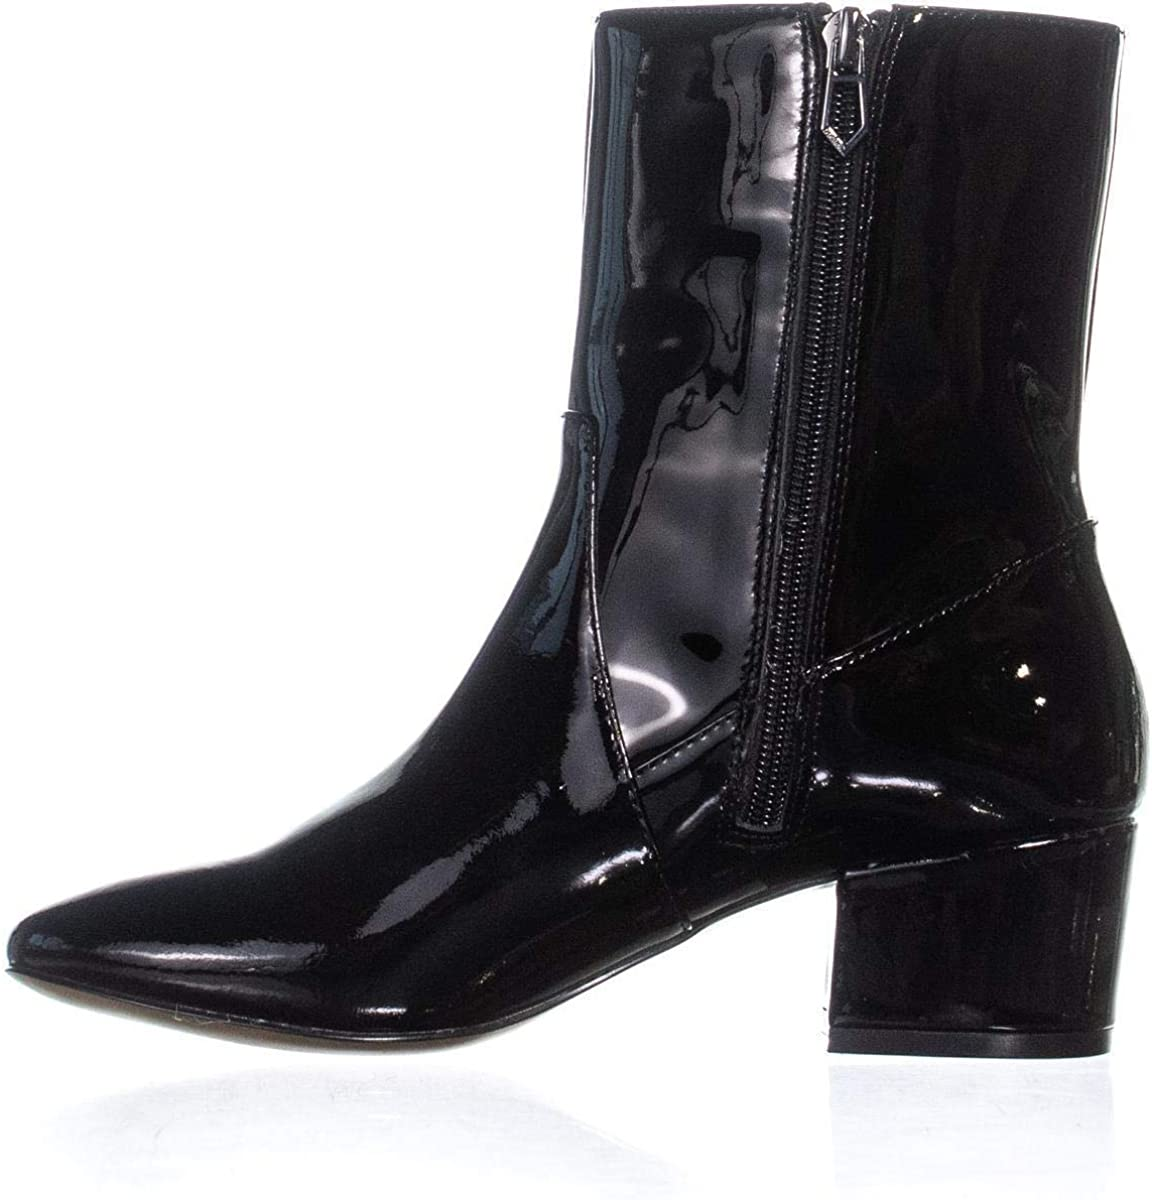 botkier Womens Gable Patent Leather Round Toe Ankle Black Patent Size 6.0